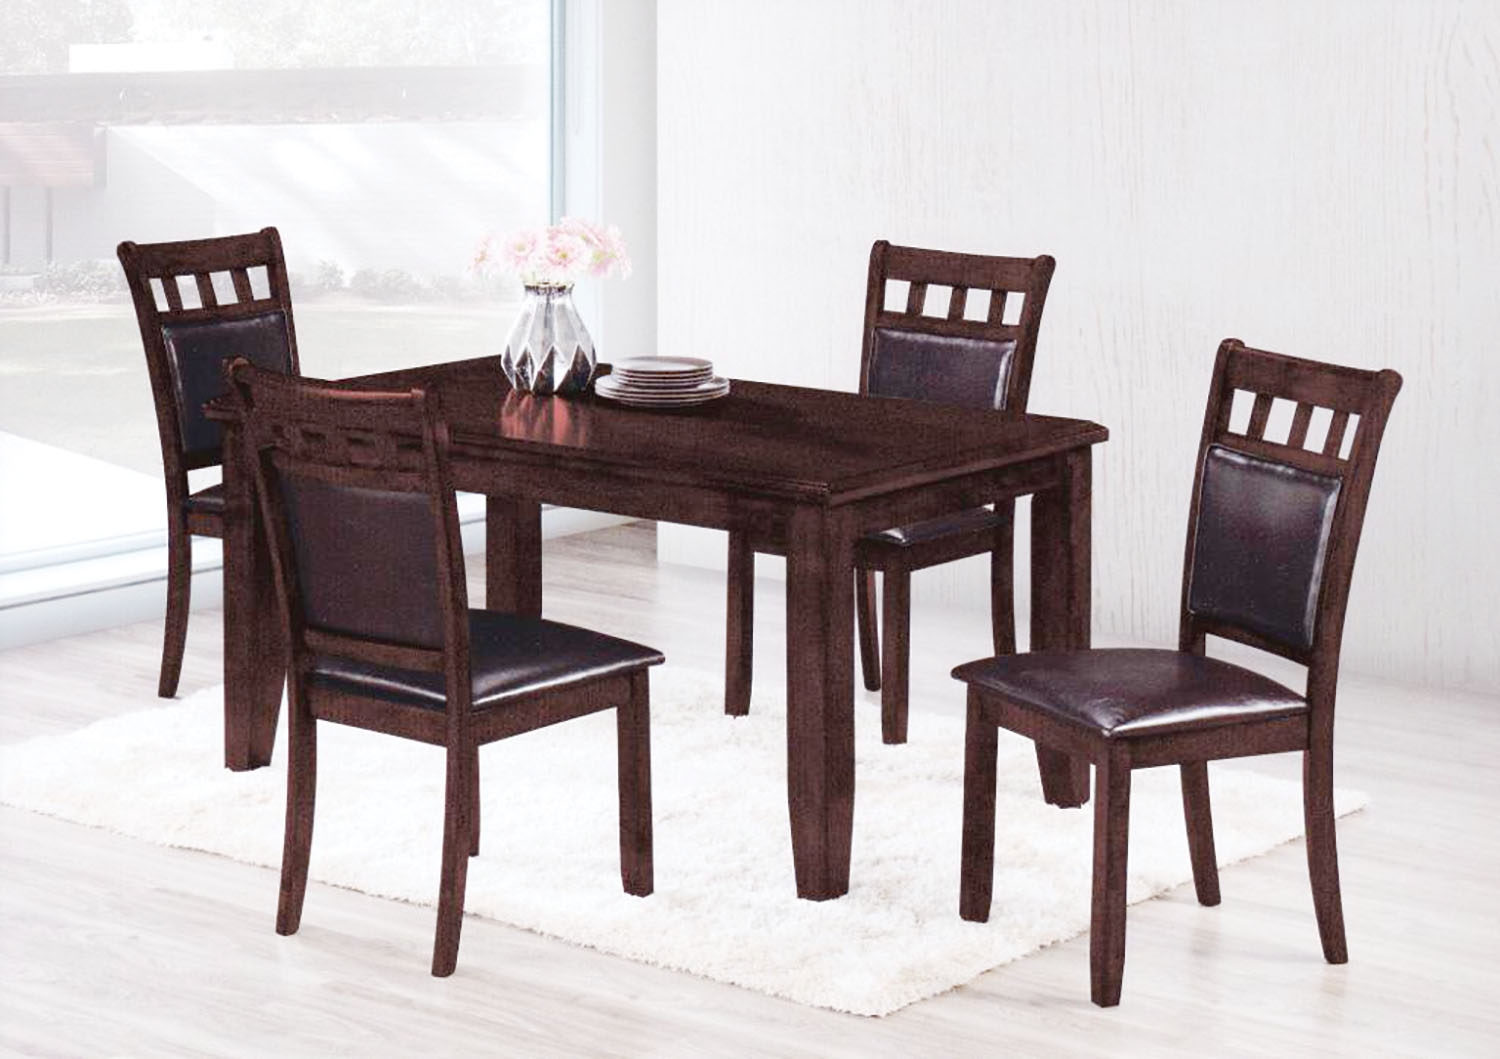 7pc Set Chairs